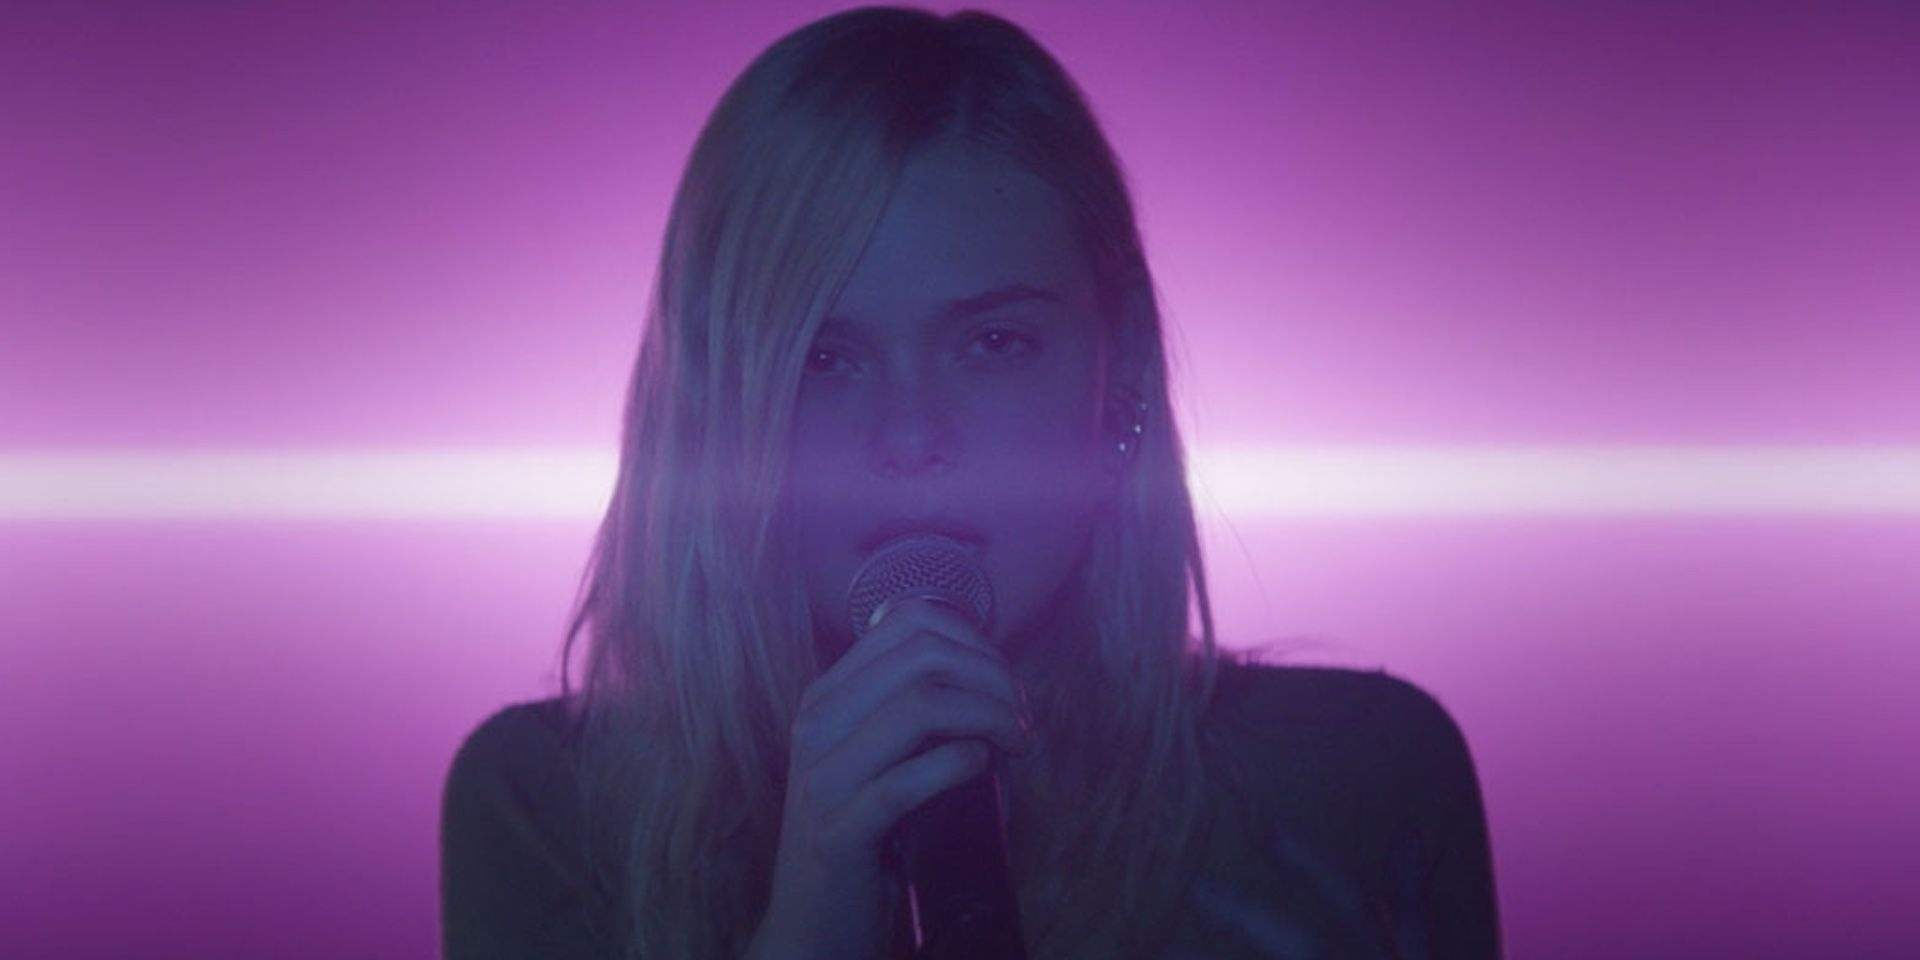 Elle Fanning covers 'Lights' by Ellie Goulding in new trailer for Teen Spirit – watch